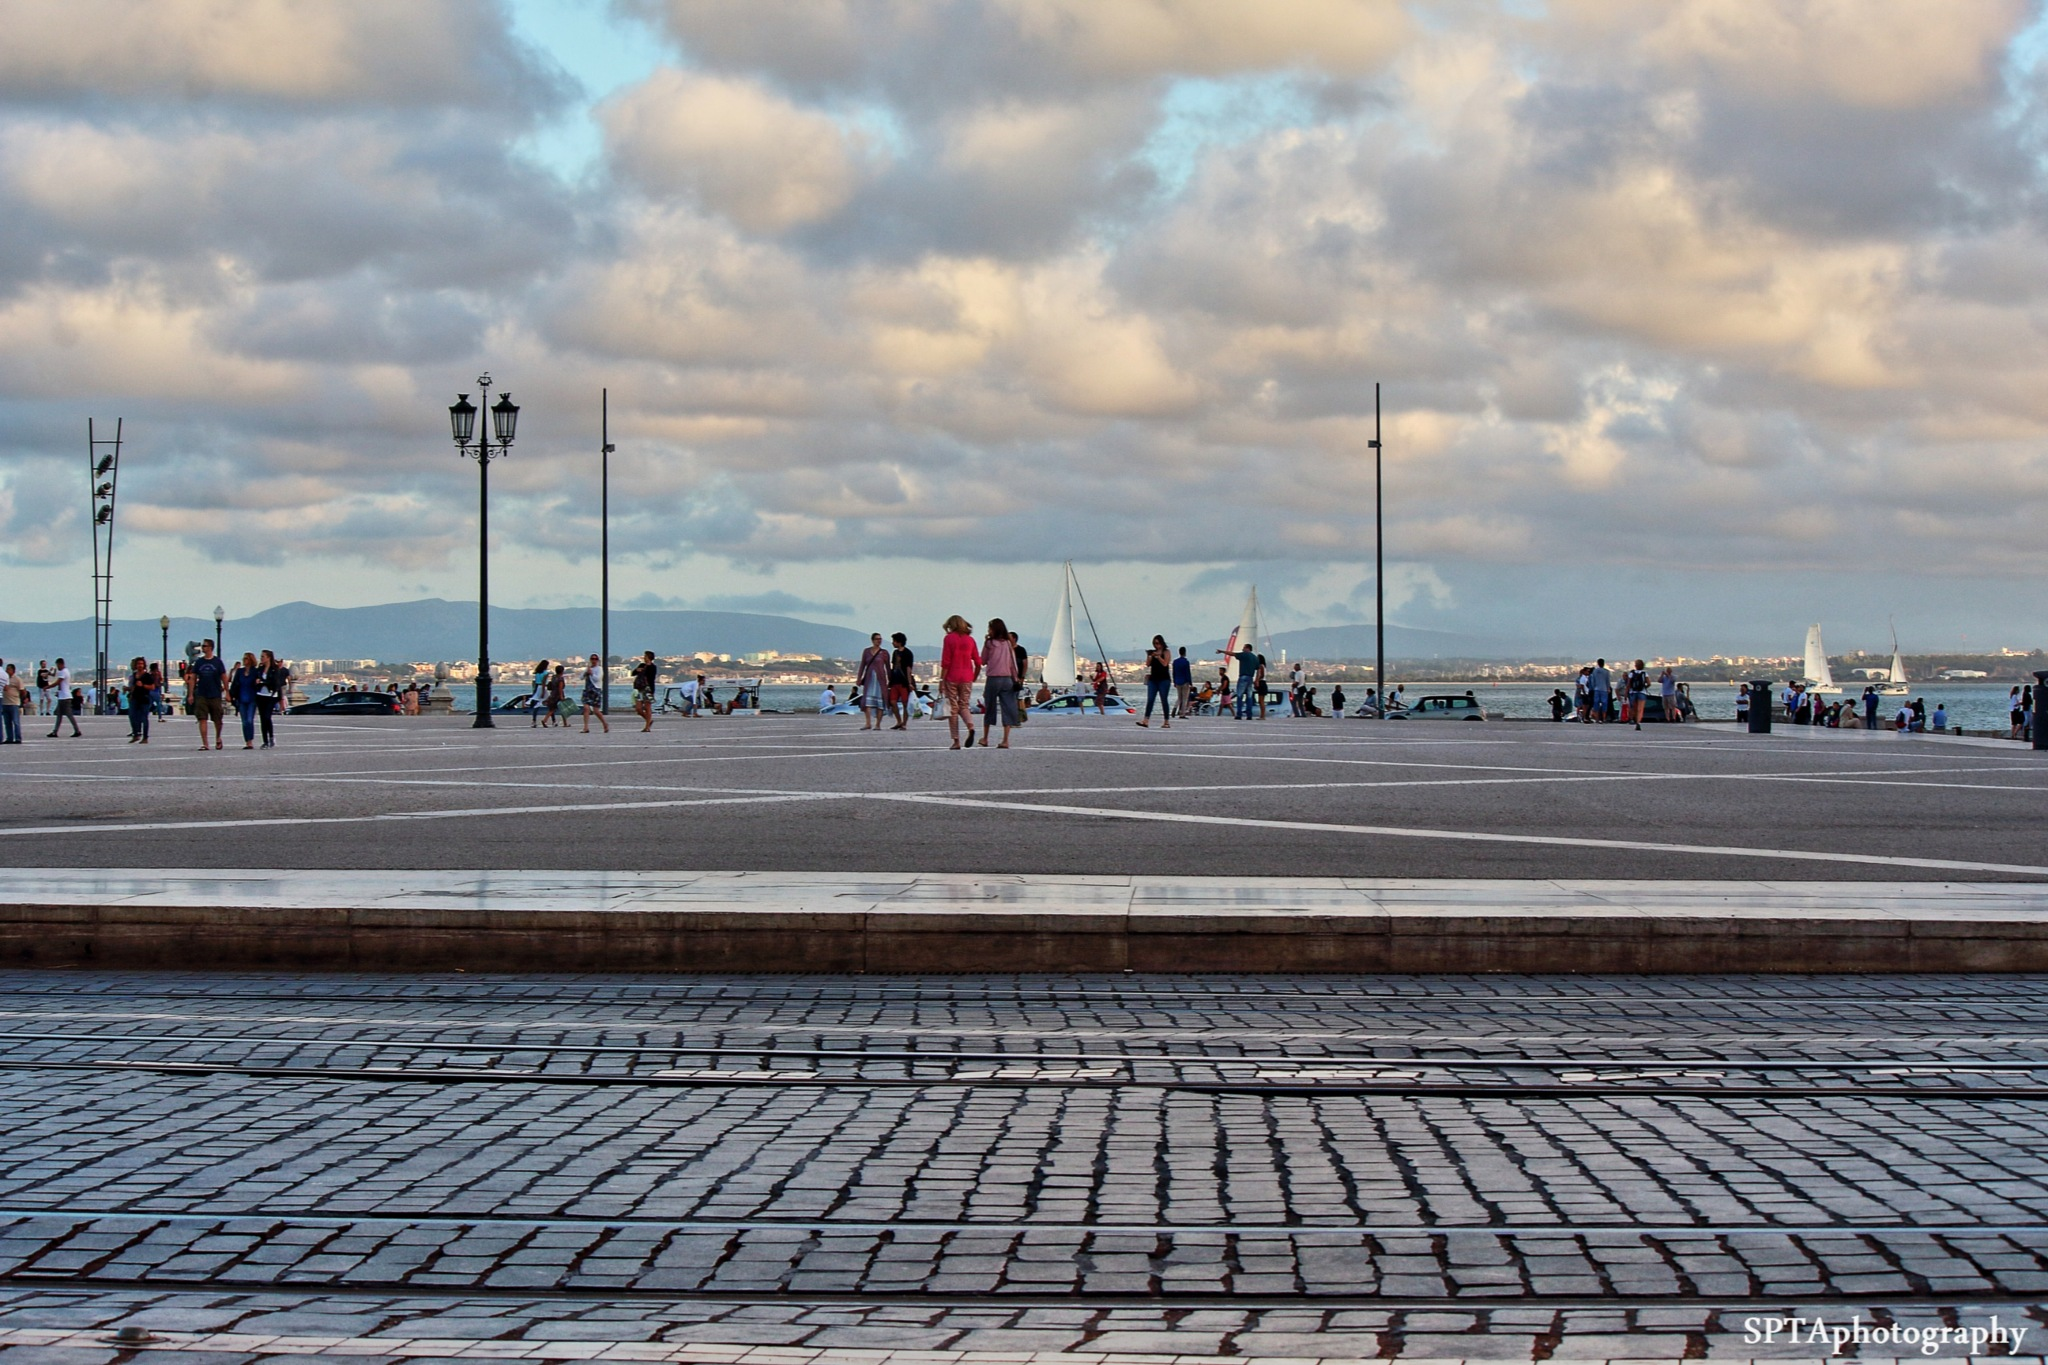 Lisbon by Sptaphotography